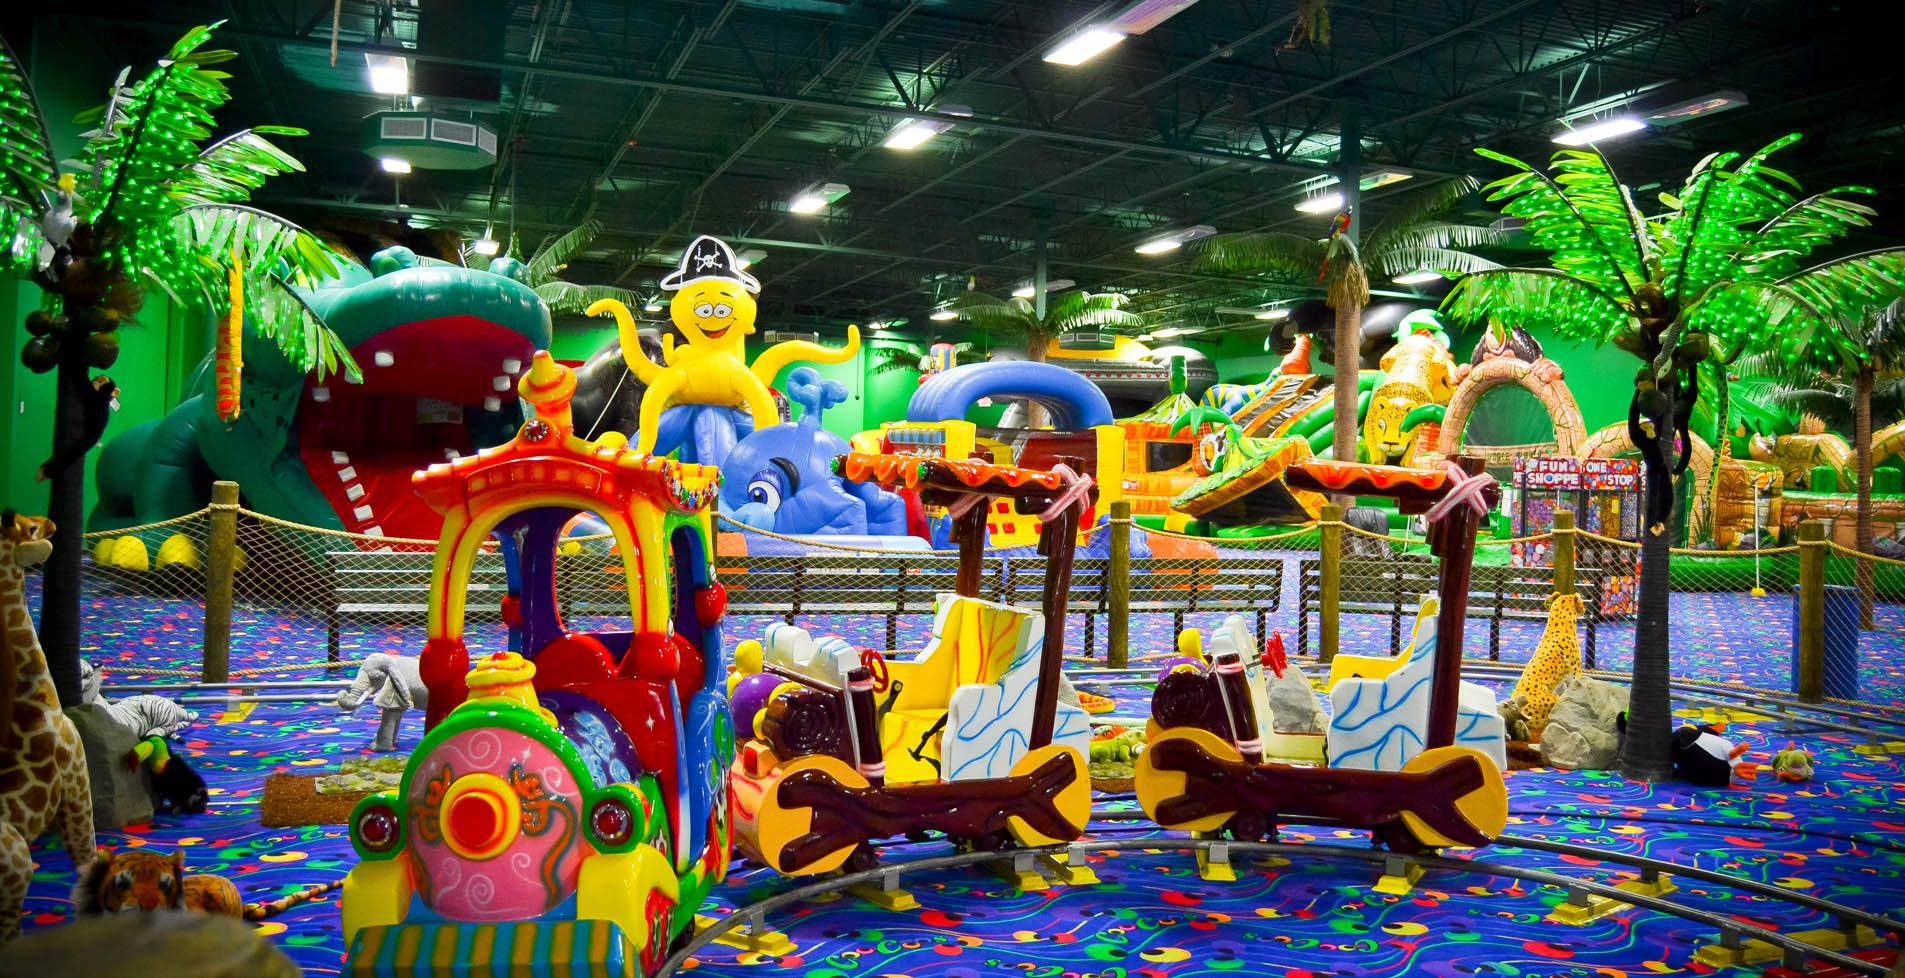 Coocoos 187 Where Kids Can Come Have A Crazy Fun Time